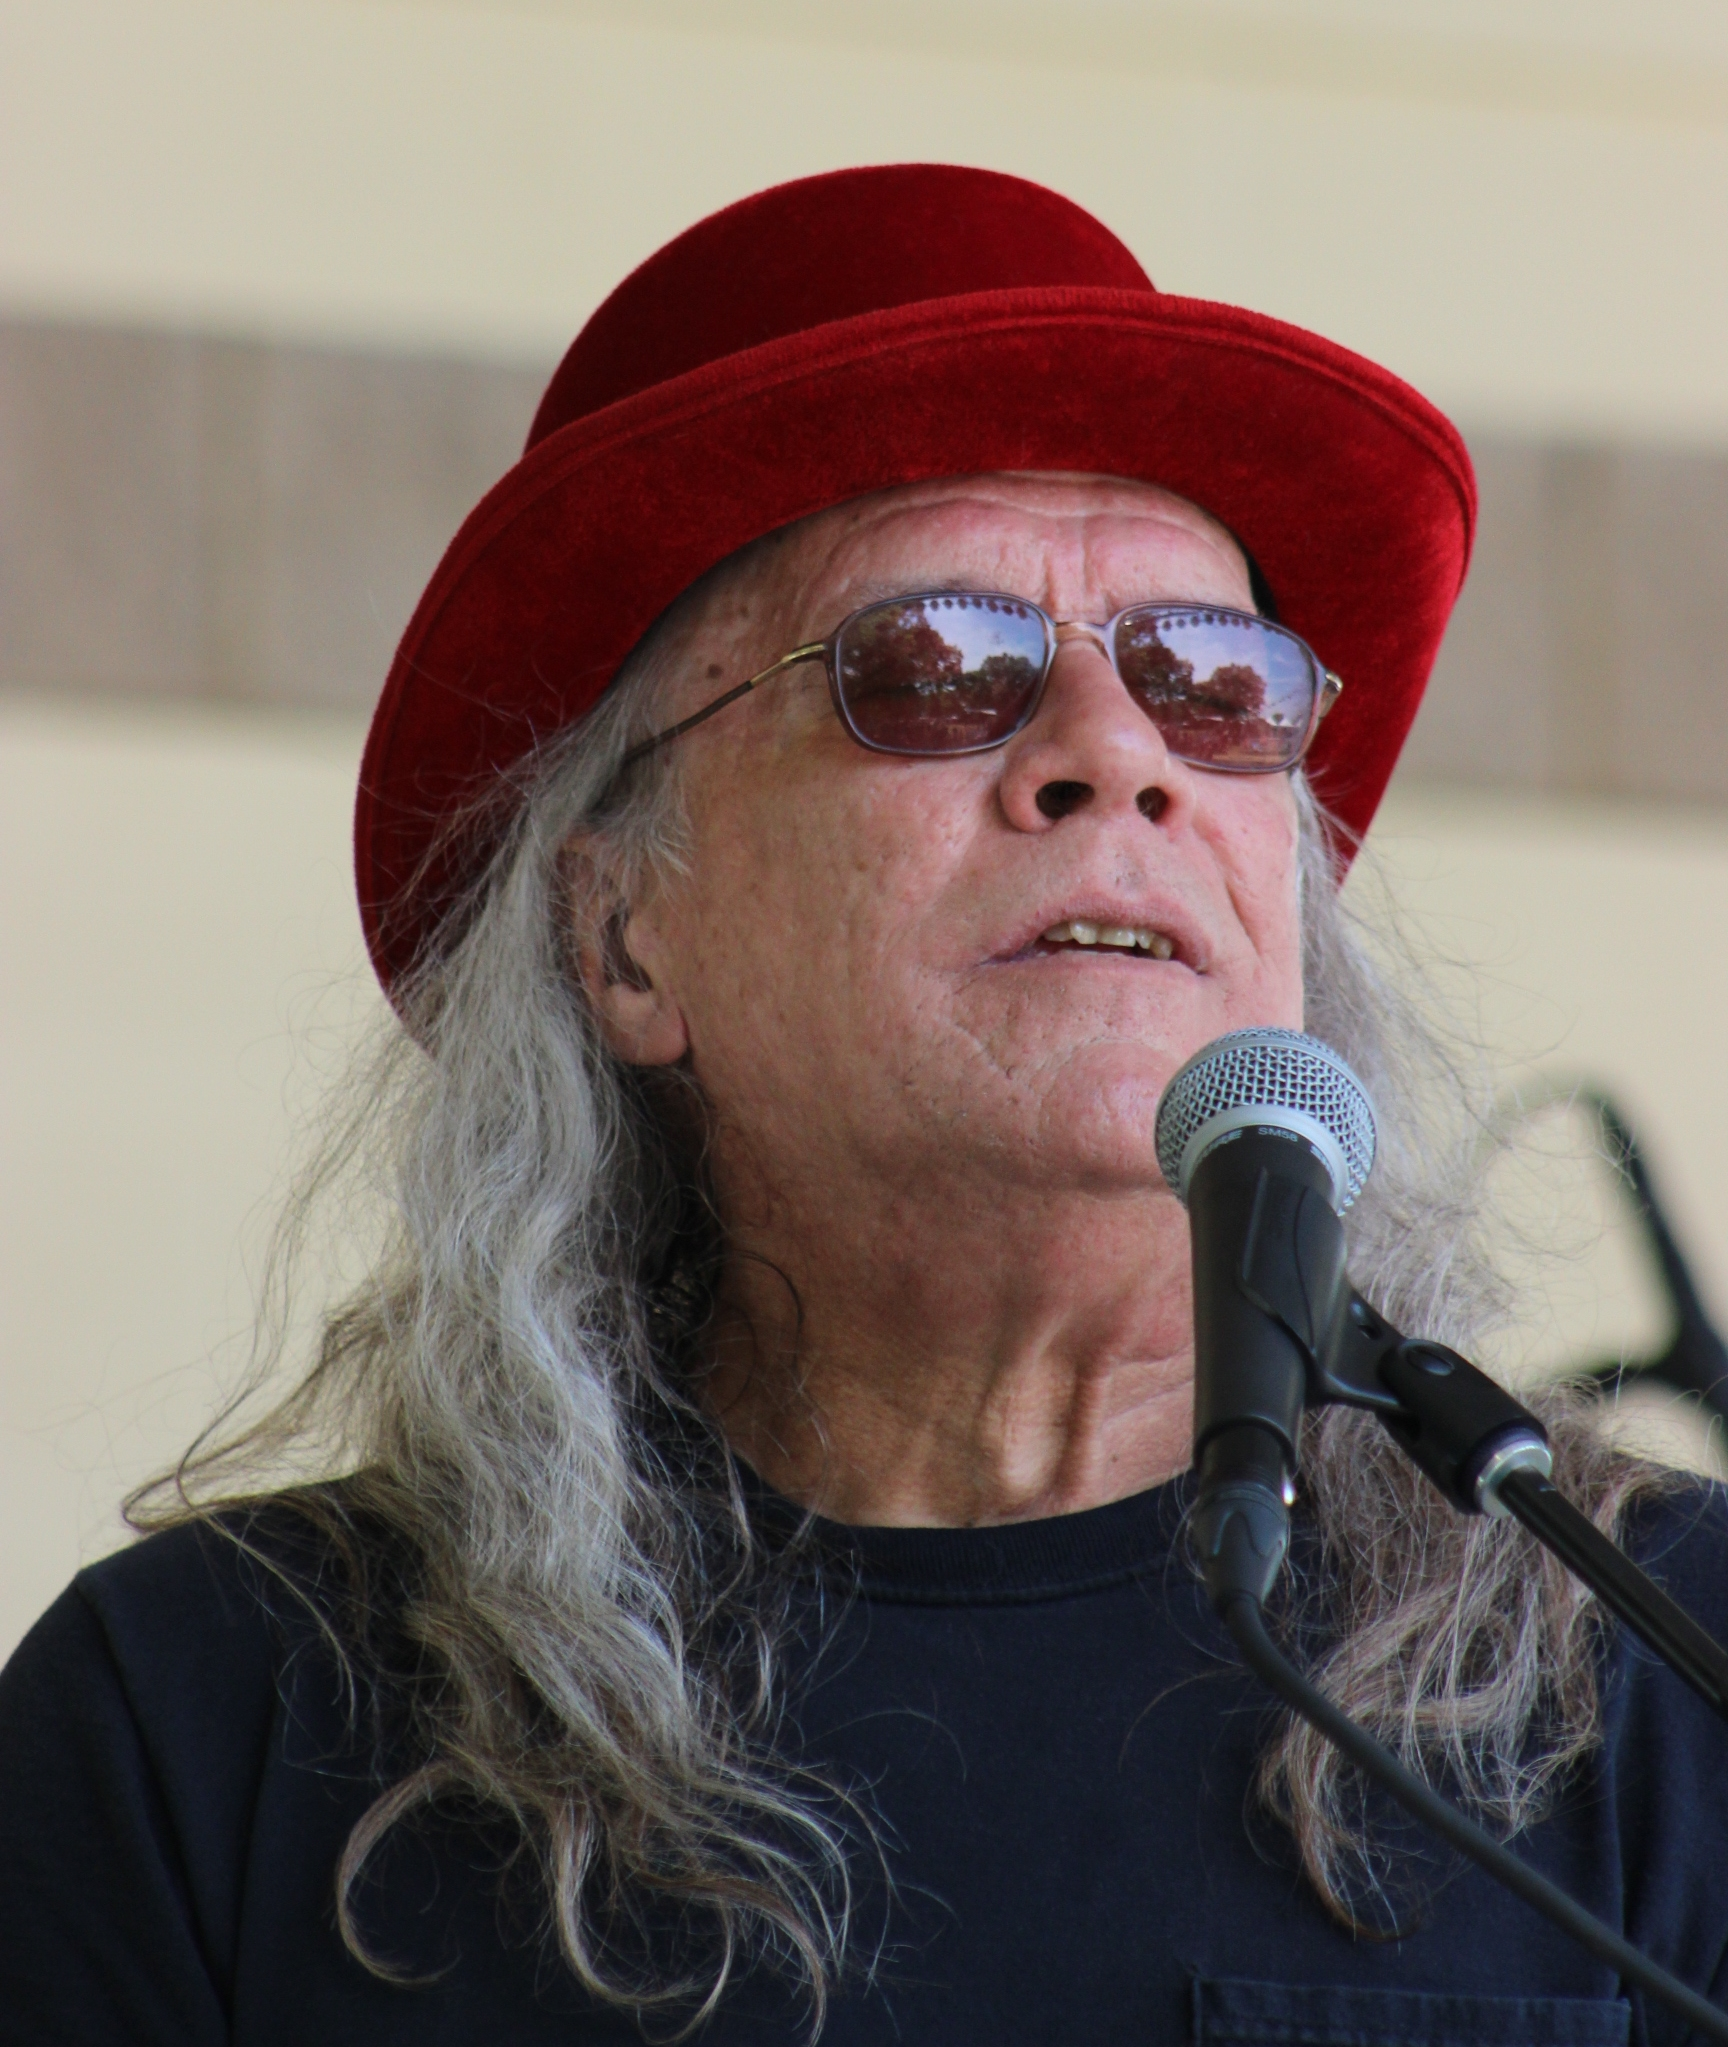 Carl at Germanfest in Muenster, Texas, April 2016/Gary E. McKee photo